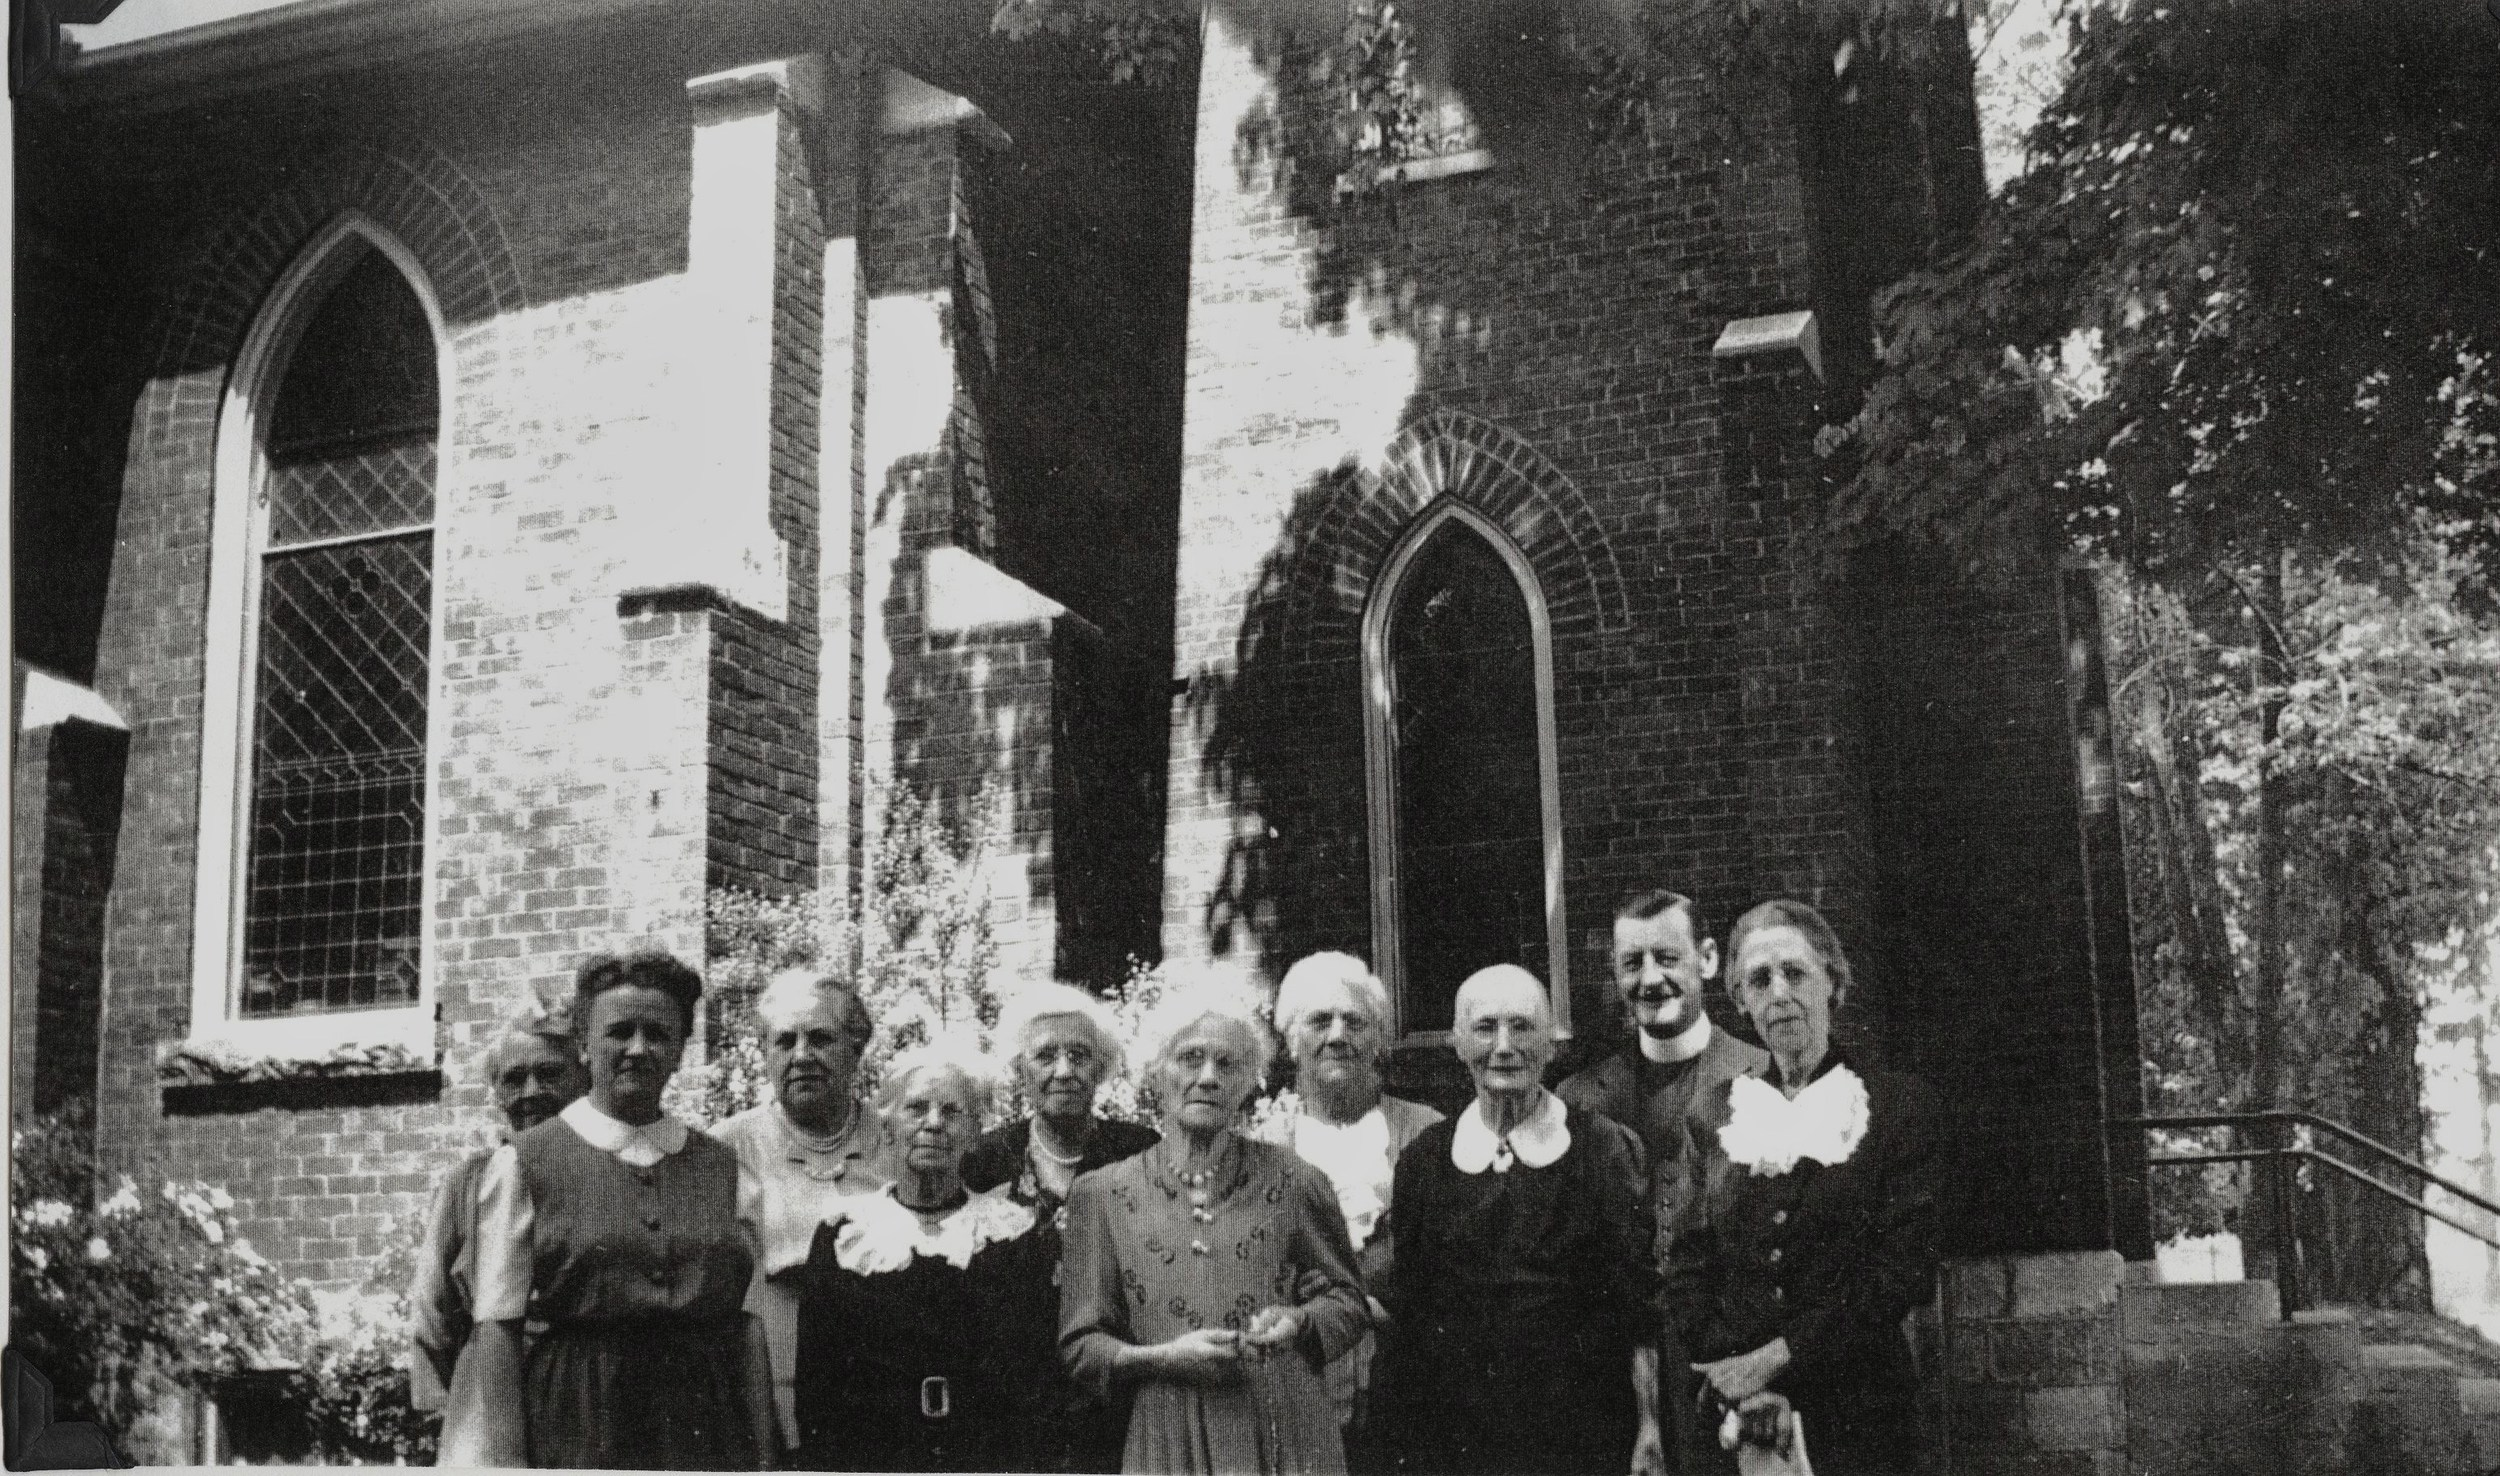 St. Andrew's Glee Club 1942, mother of Jack Grant in centre